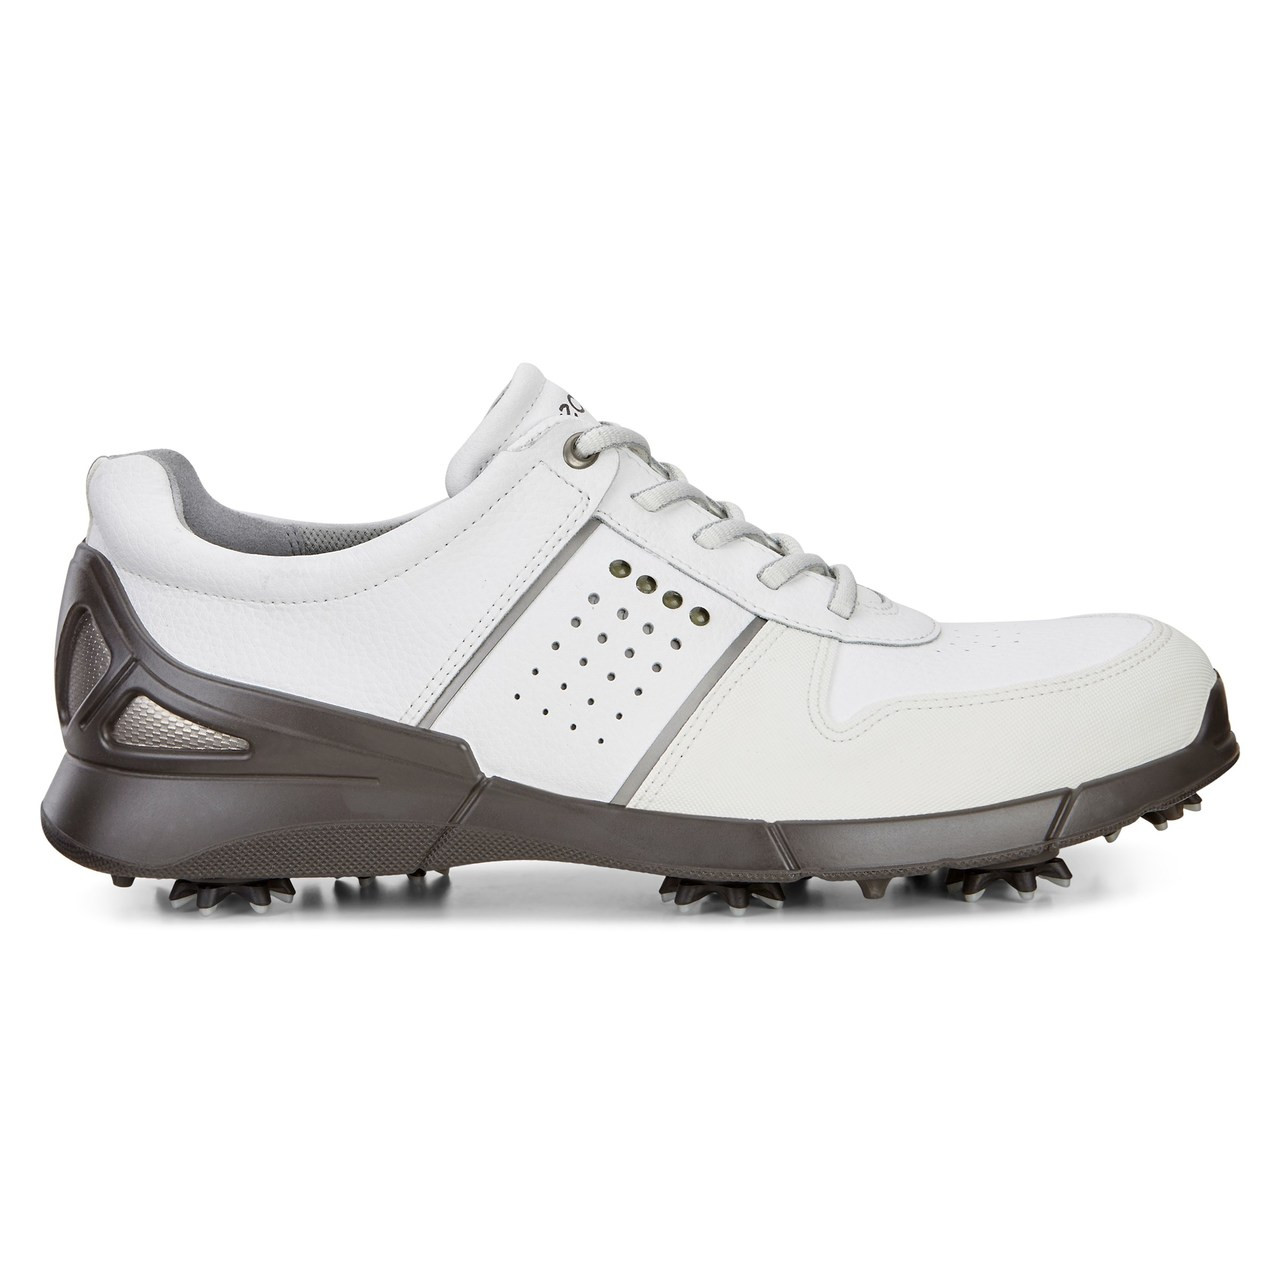 a6addf2775 Ecco Mens Base One Golf Shoes White Mimosa Extra Width Option Size 42  (8-8.5)